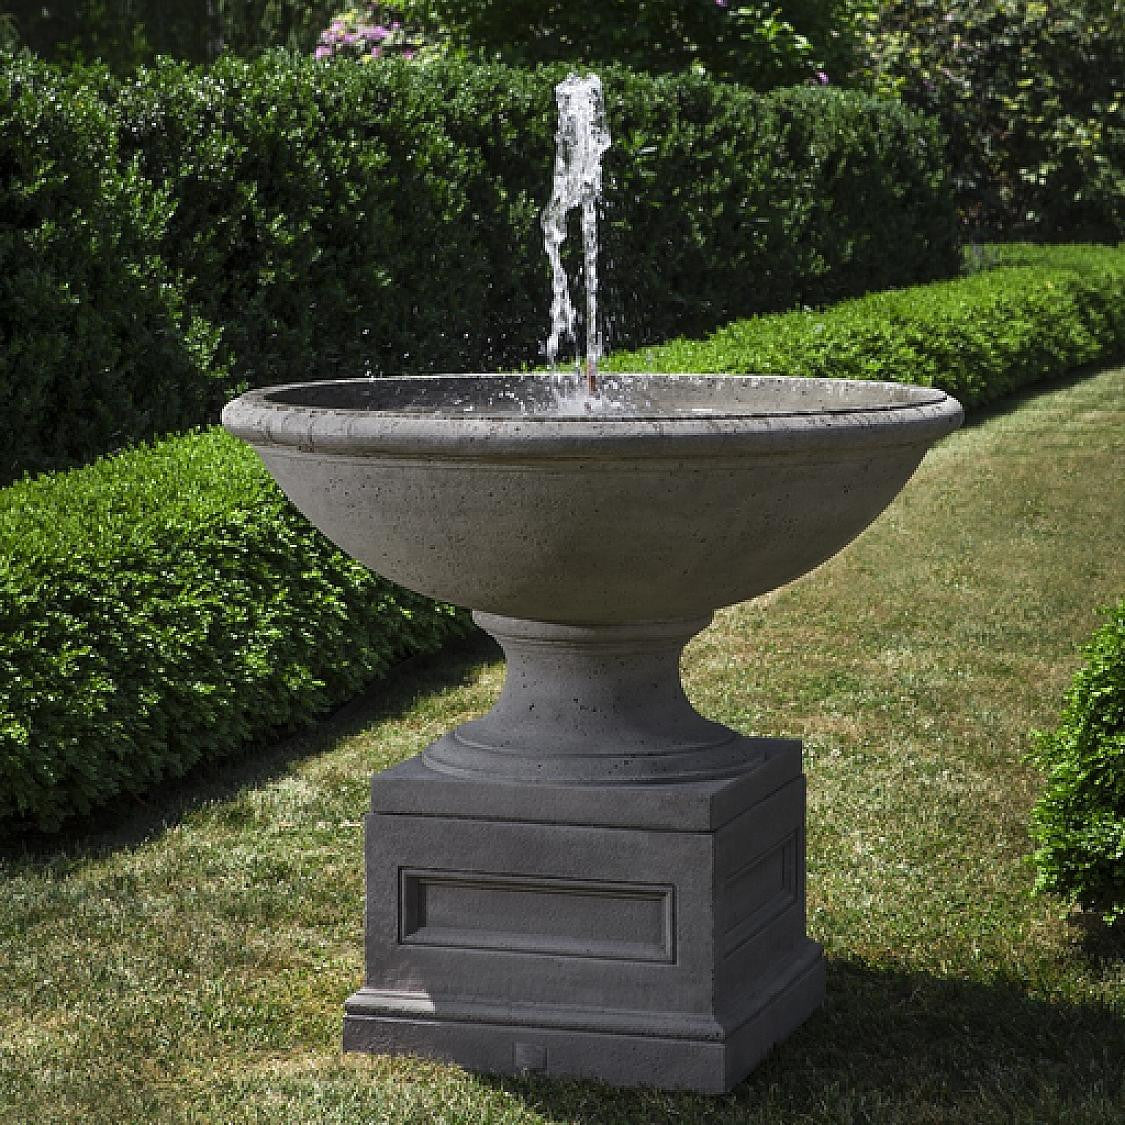 Condotti Outdoor Water Fountain - Soothing Walls